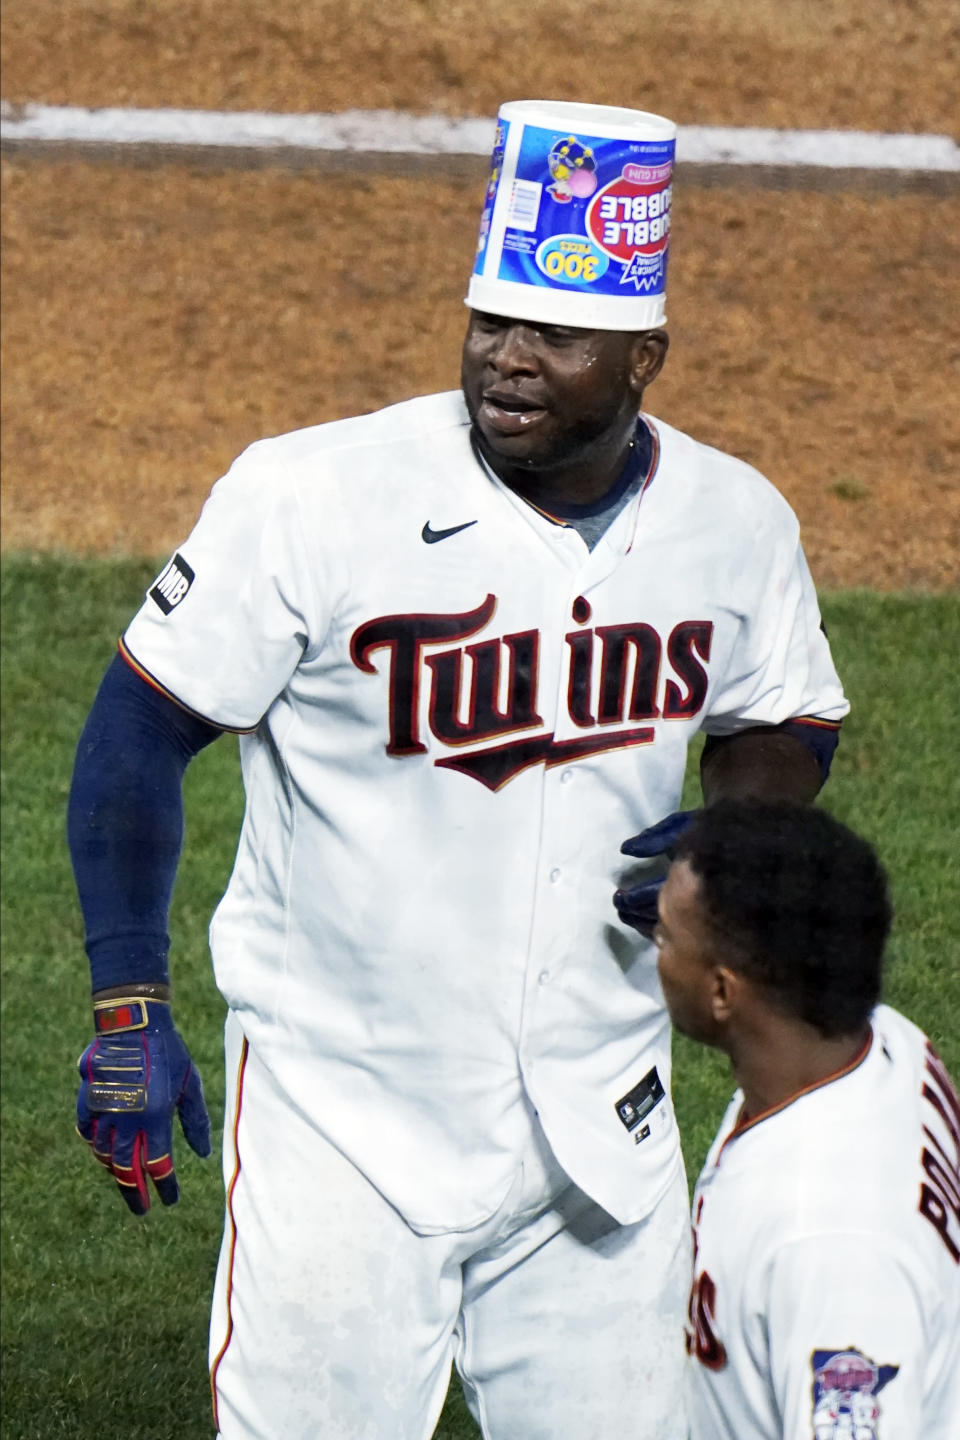 Minnesota Twins' Miguel Sano wears the bubble gum container on his head following his walk-off, two-run home run against the Cincinnati Reds in the 12th inning of a baseball game, early Tuesday, June 22, 2021, in Minneapolis. The Twins won 7-5. (AP Photo/Jim Mone)